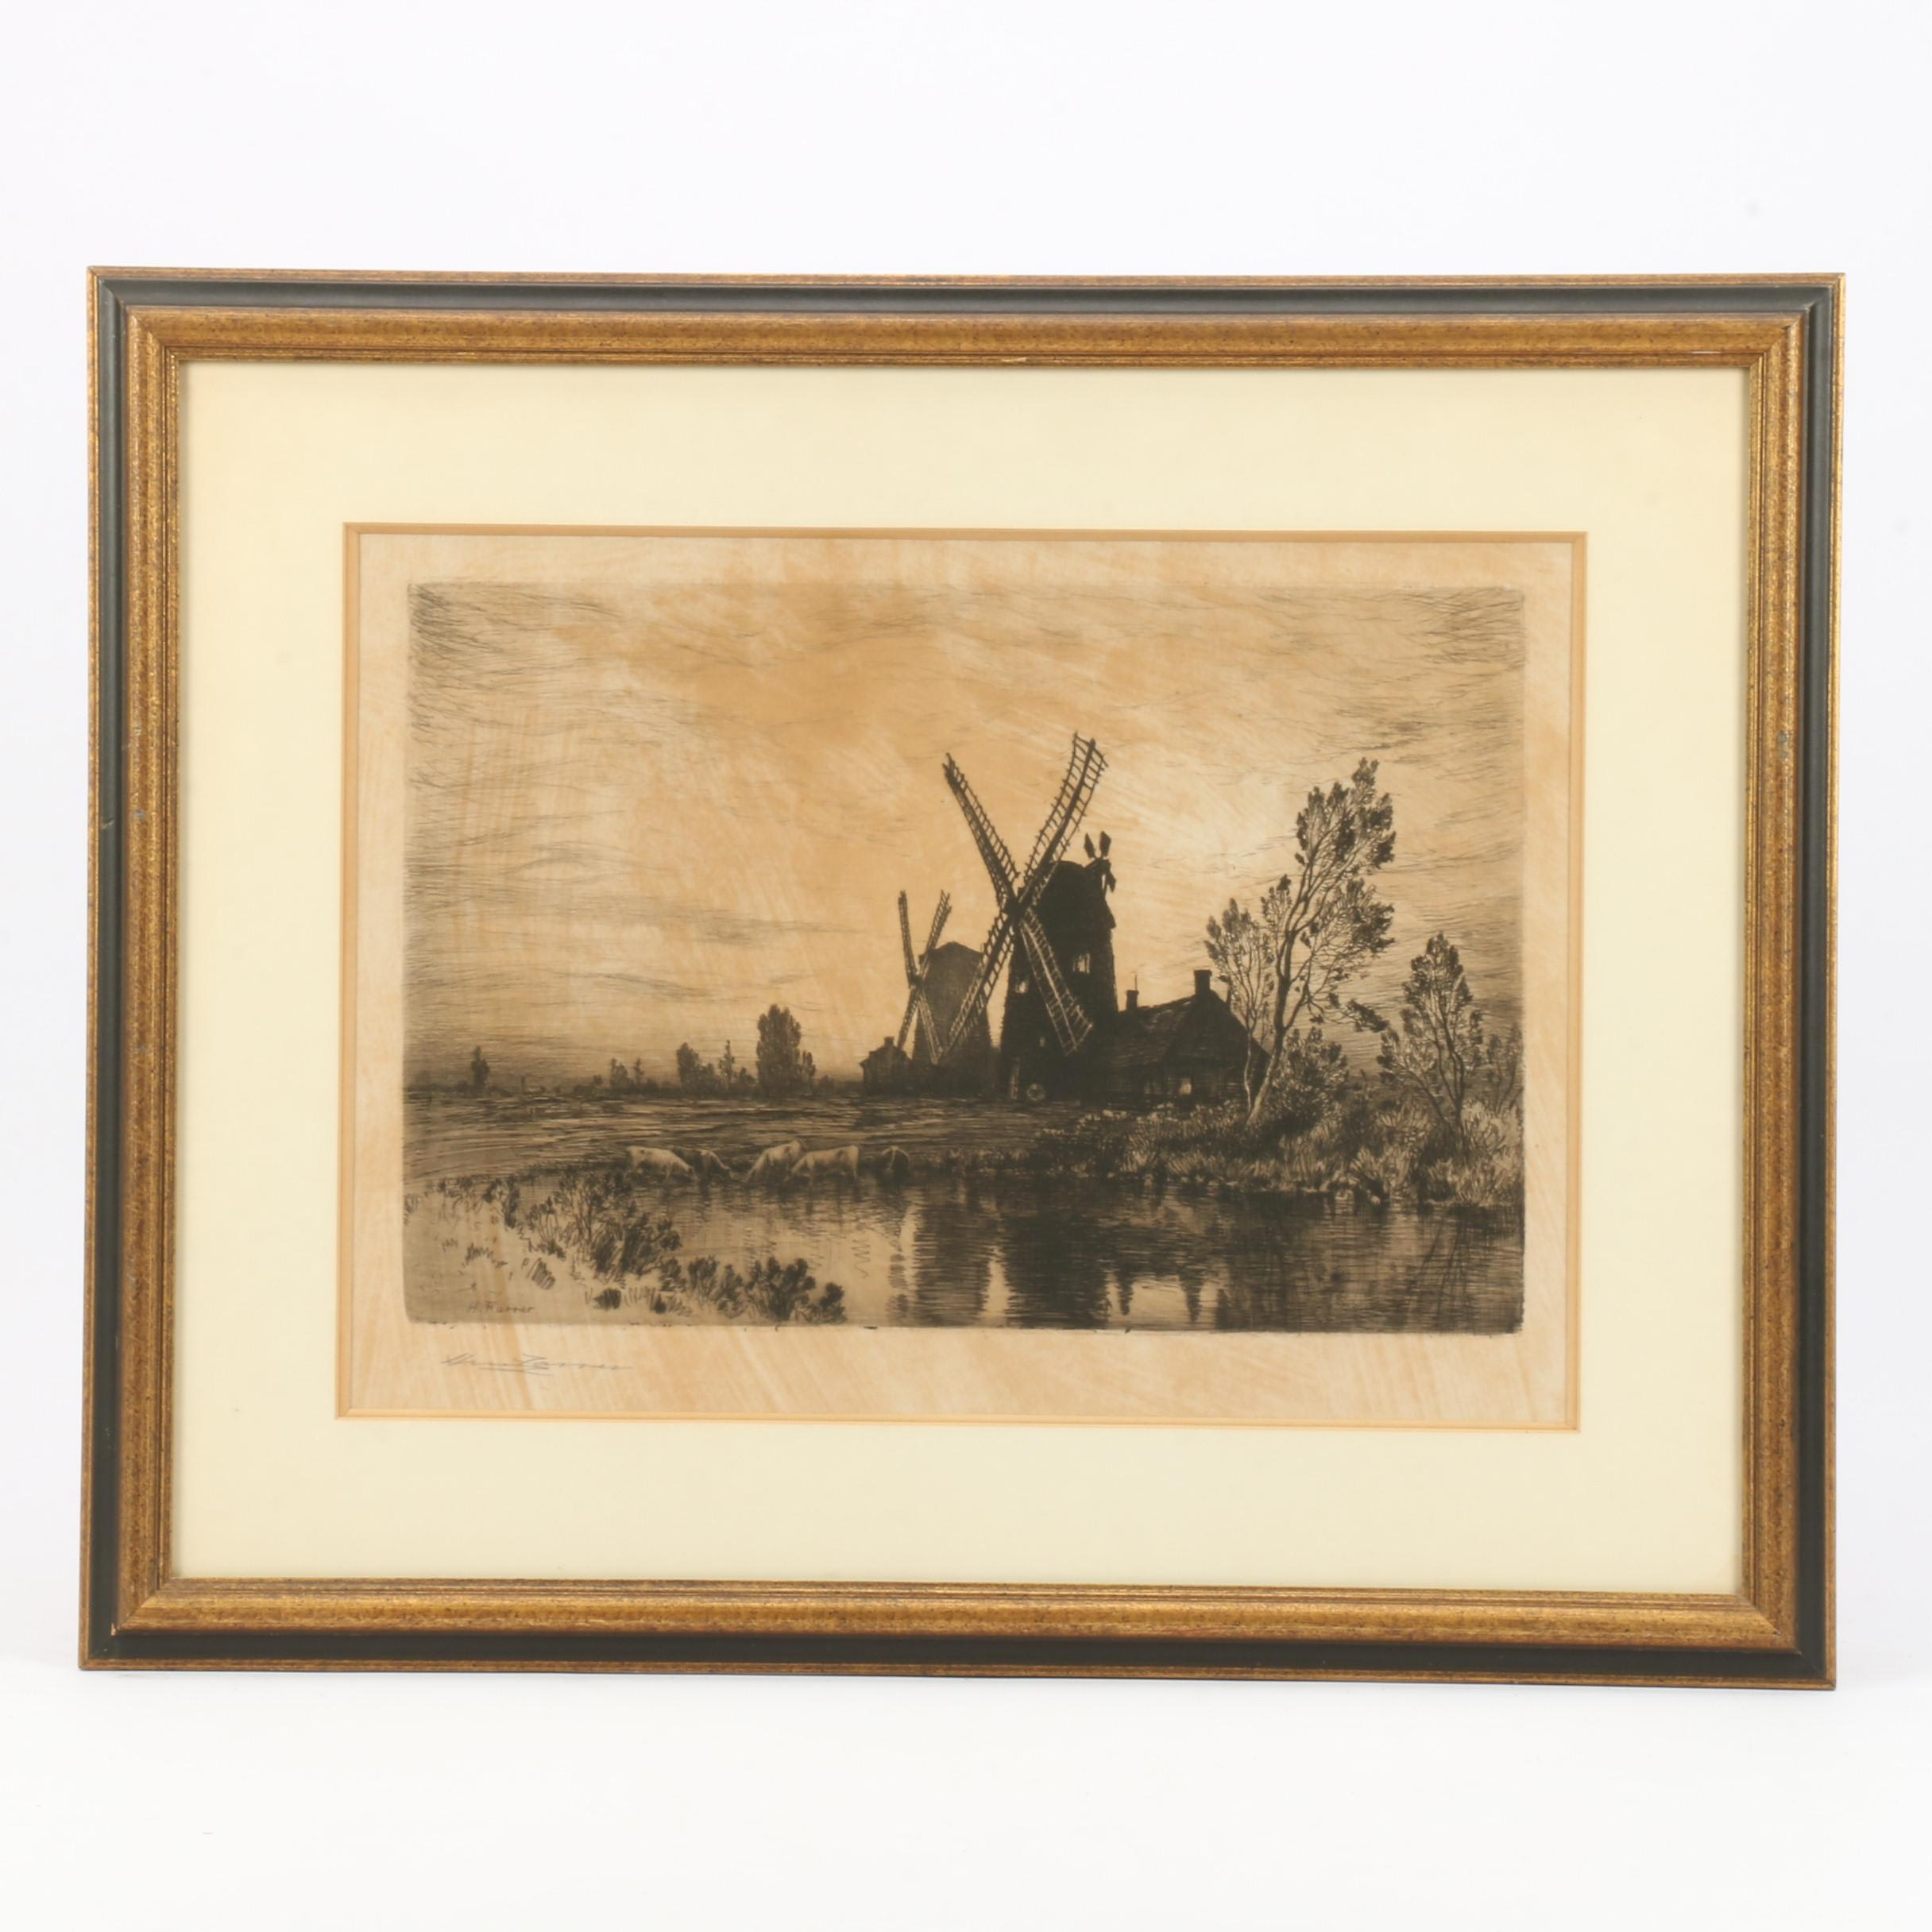 Restrike Etching after Henry Farrer of Pastoral Scene with Windmill